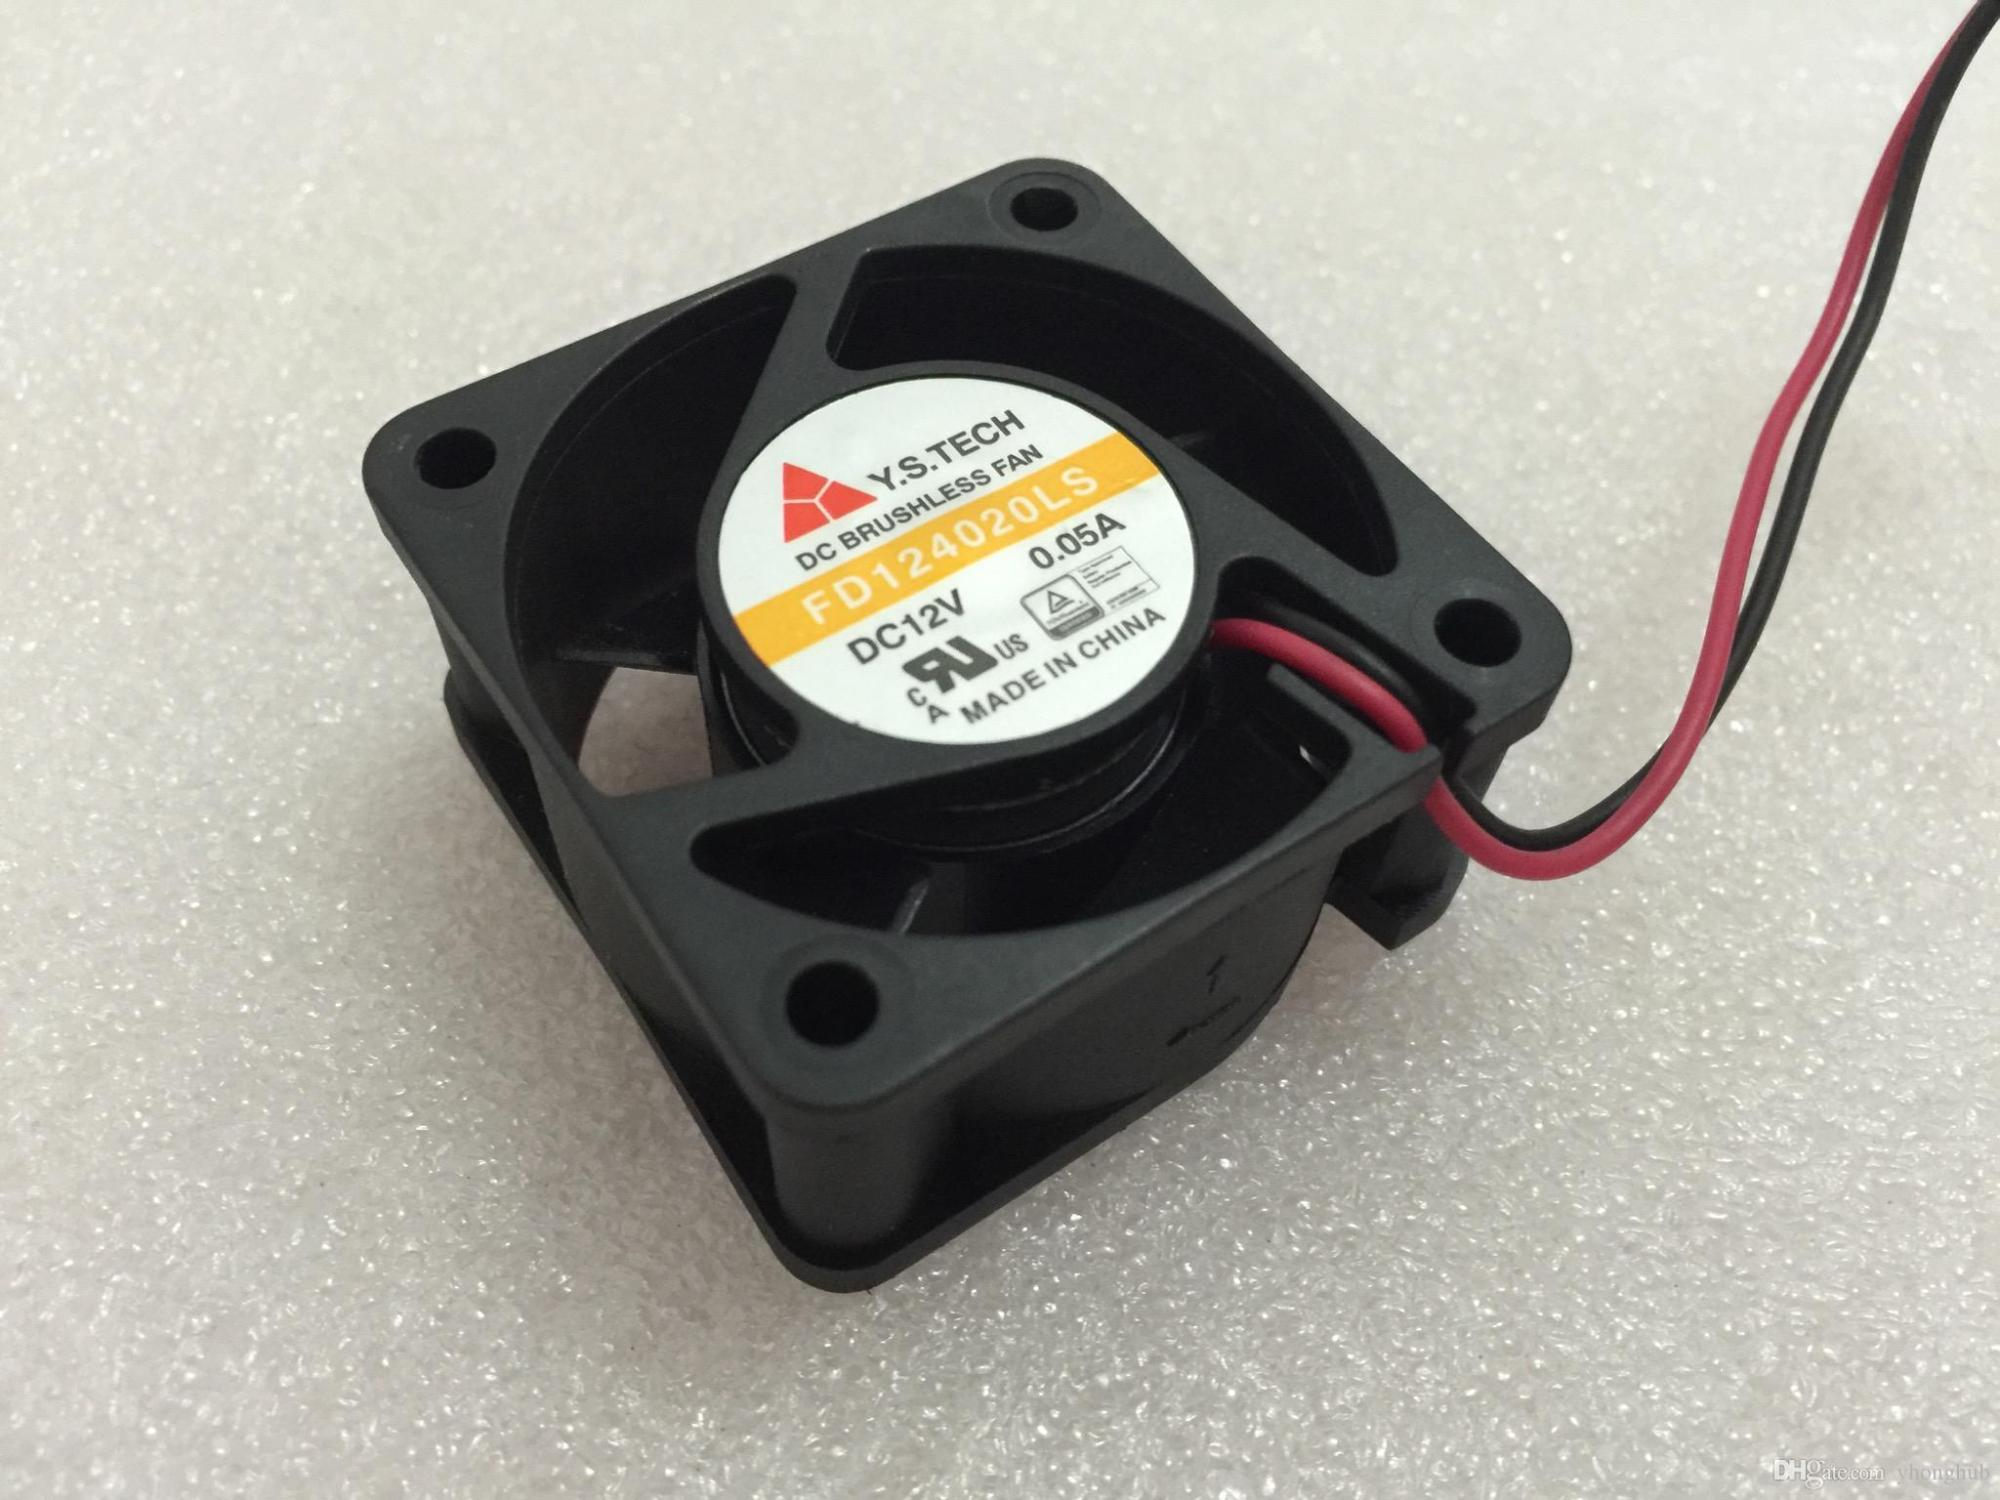 hight resolution of 2018 y s tech fd124020ls dc 12v 0 05a 2 wire 2 pin connector 60mm 40x40x20mm server square cooling fan from yhonghub 14 09 dhgate com